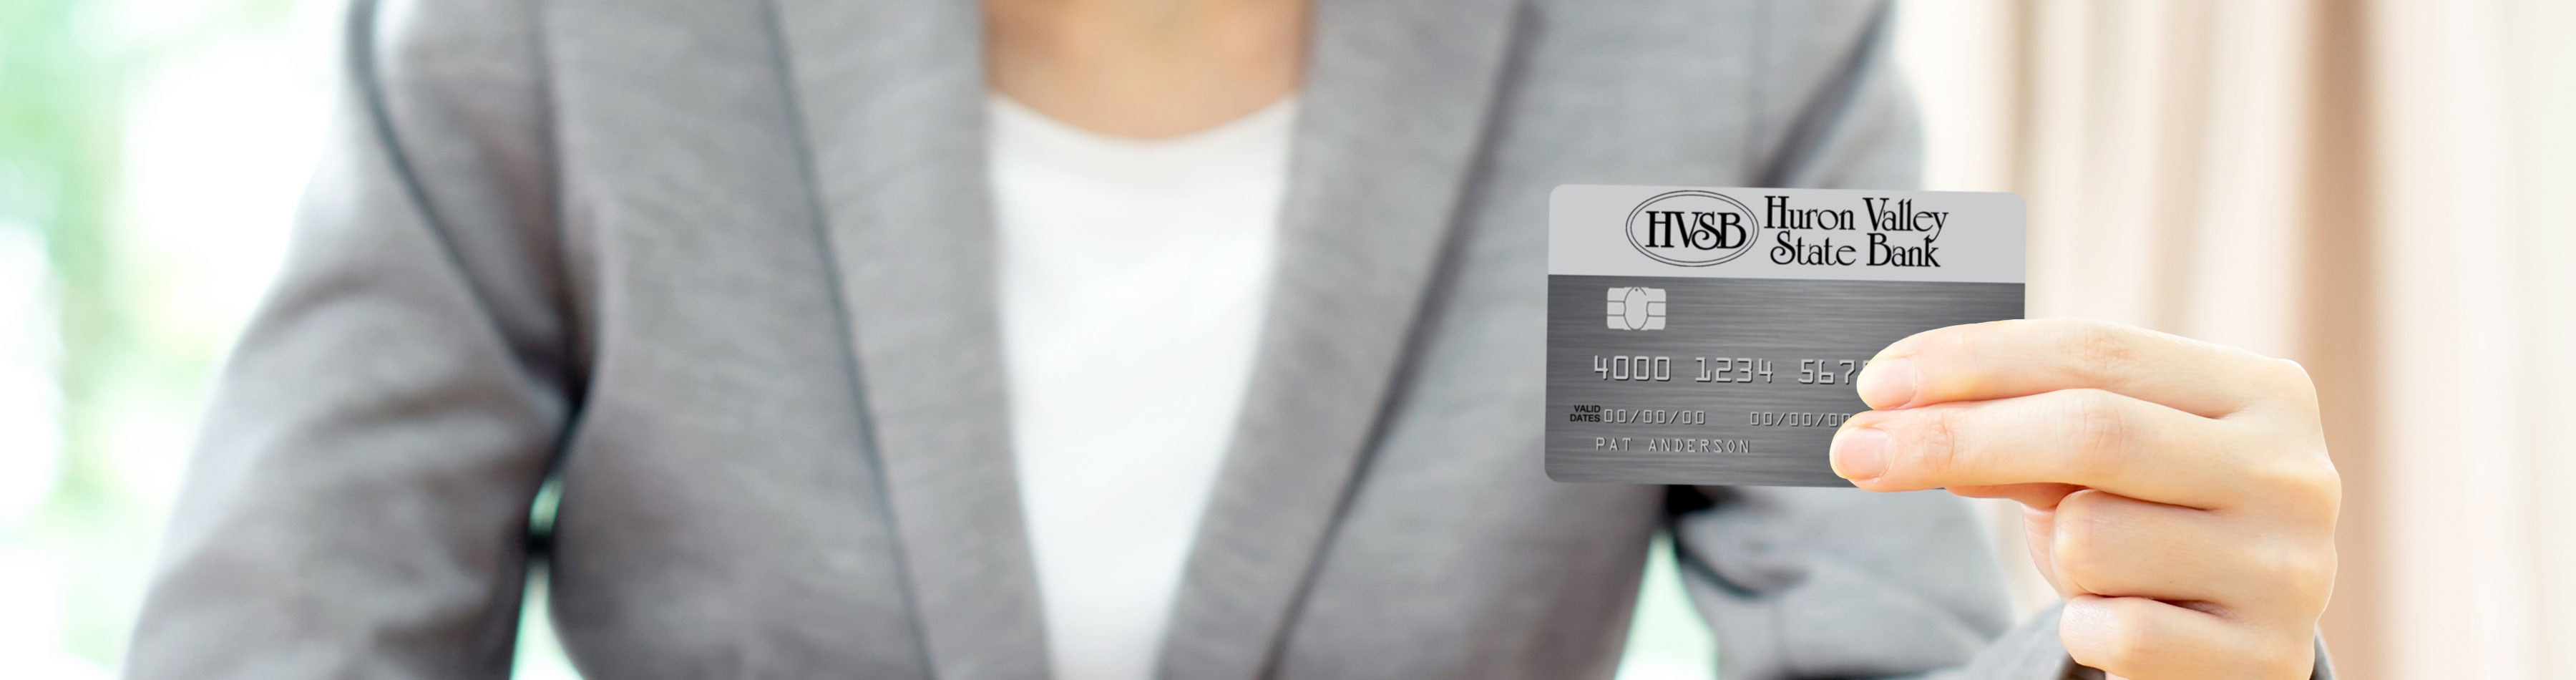 Business Commercial Credit Card